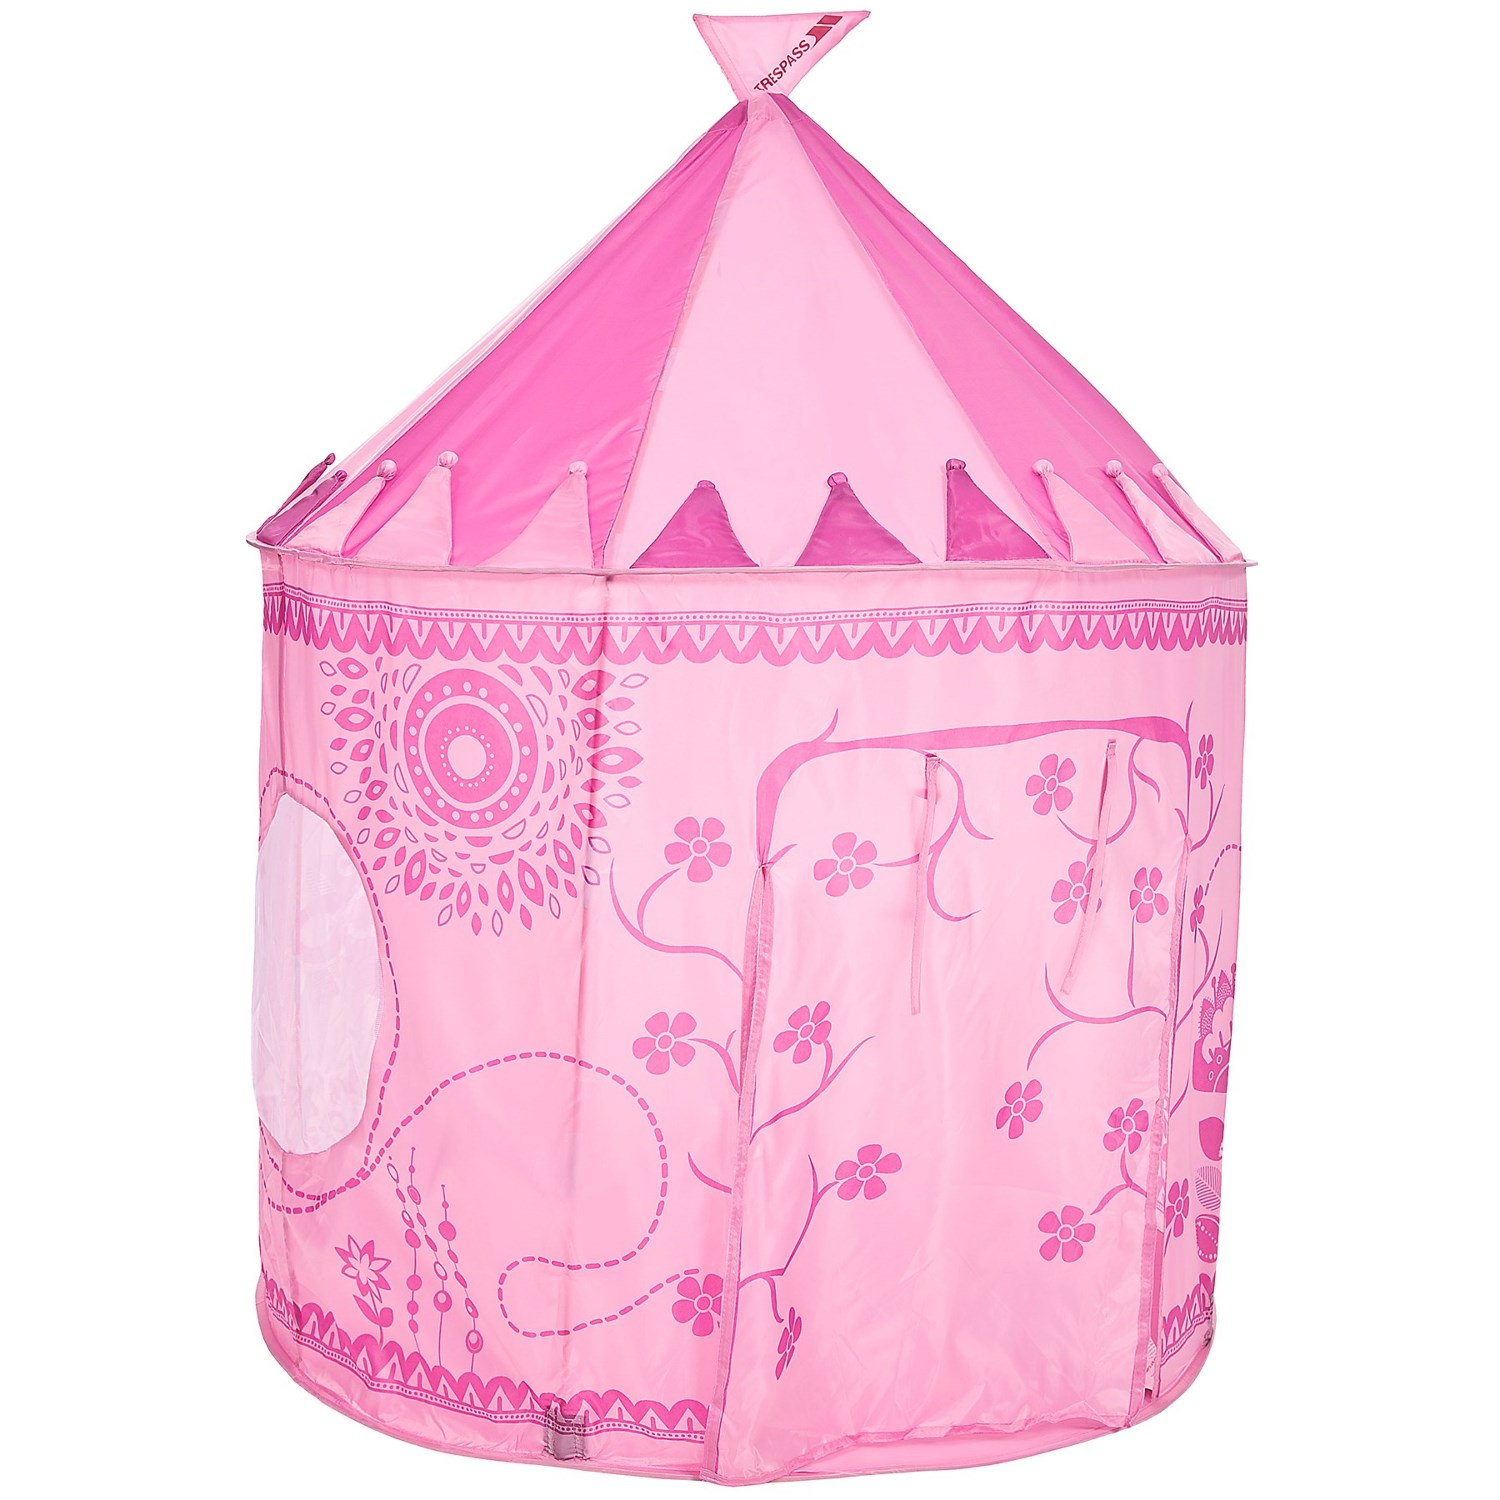 Kids Play Tent Trespass Chateau Kids Pop Up Play Tent Upf 50